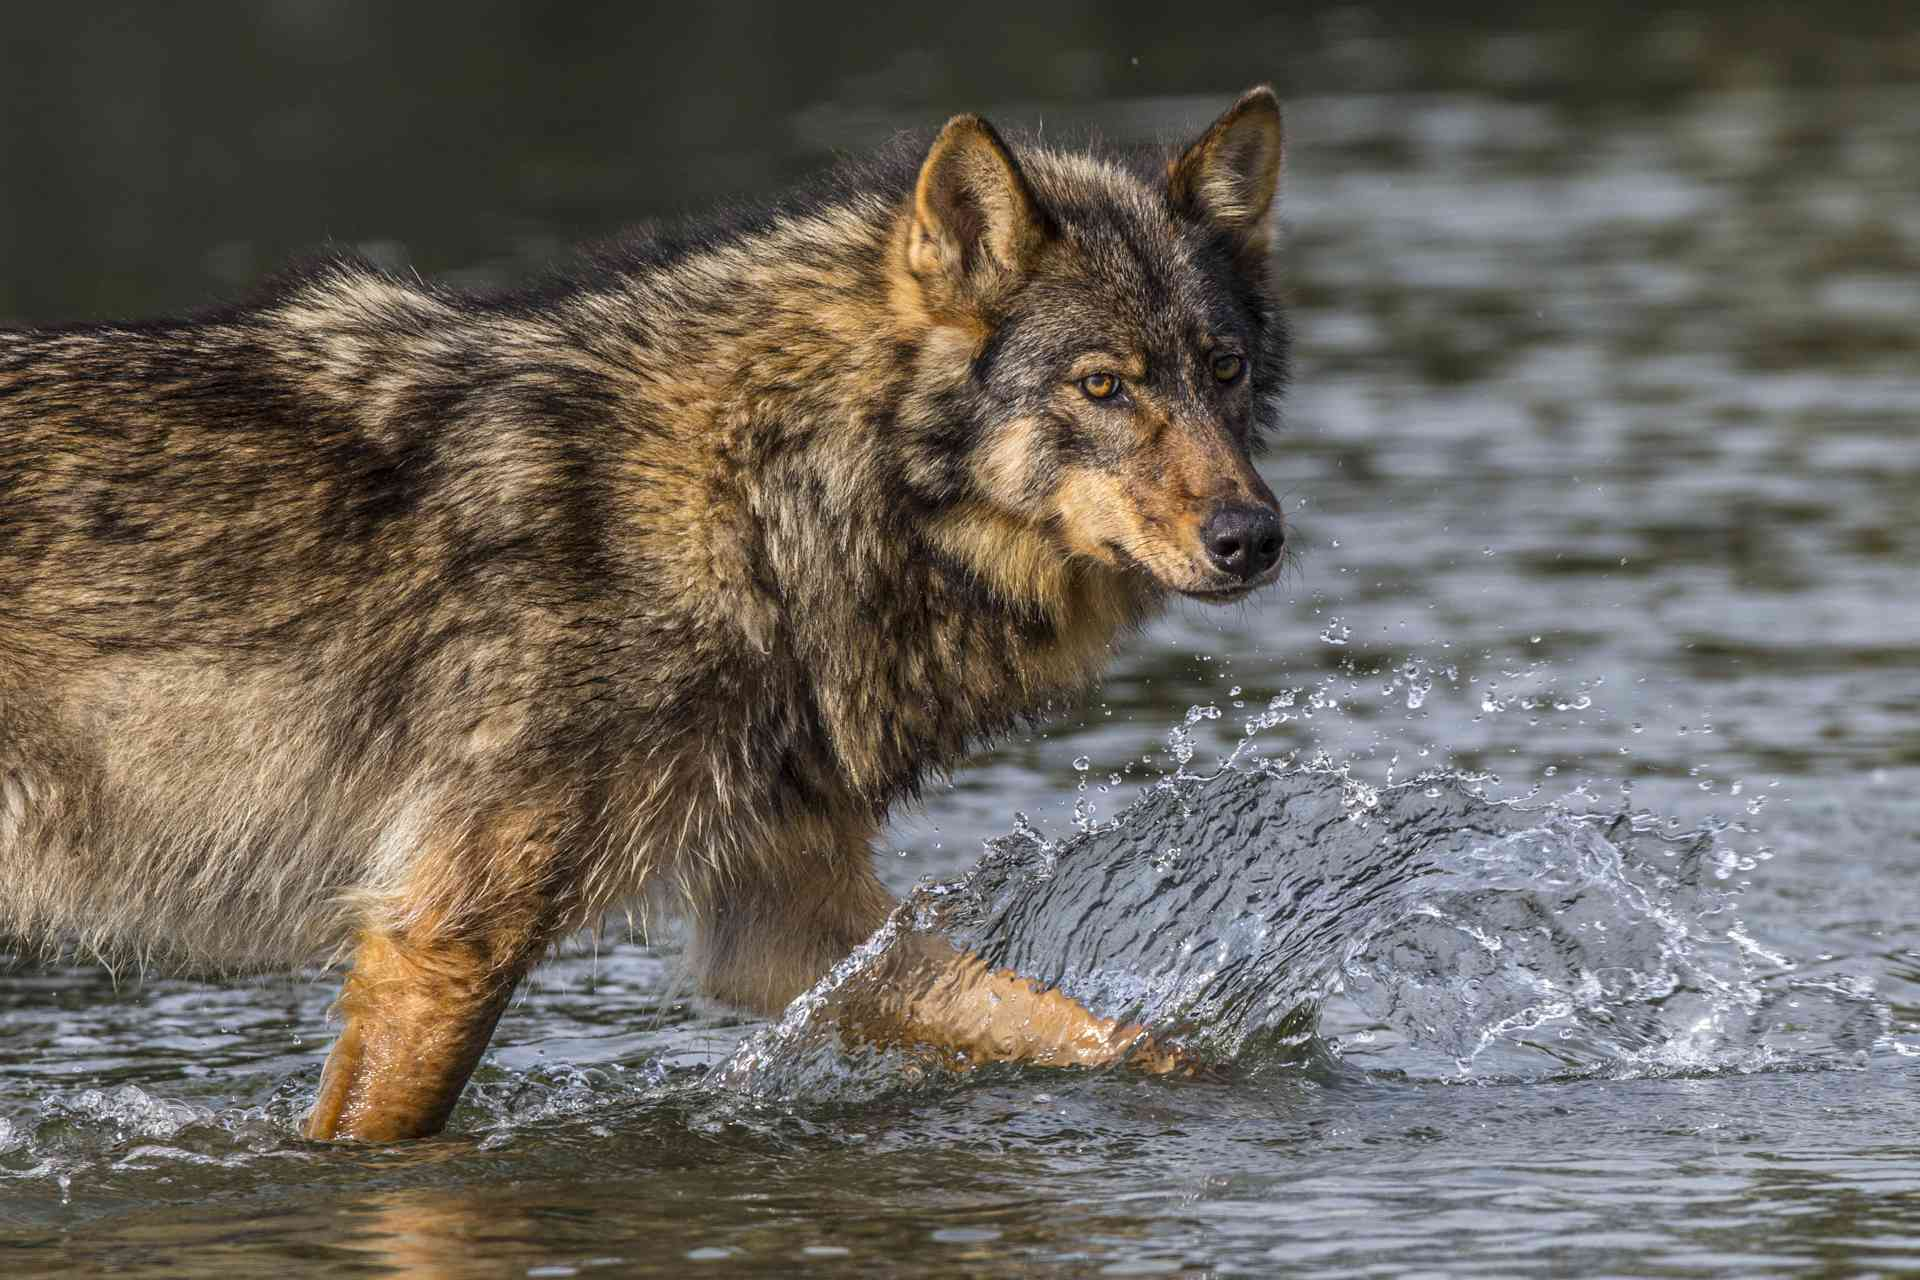 Coastal rain wolves live on the outer Islands of the BC coast. Wolves on these Islands live on a very diverse selection of food including deer, chitons in the intertidal zone.